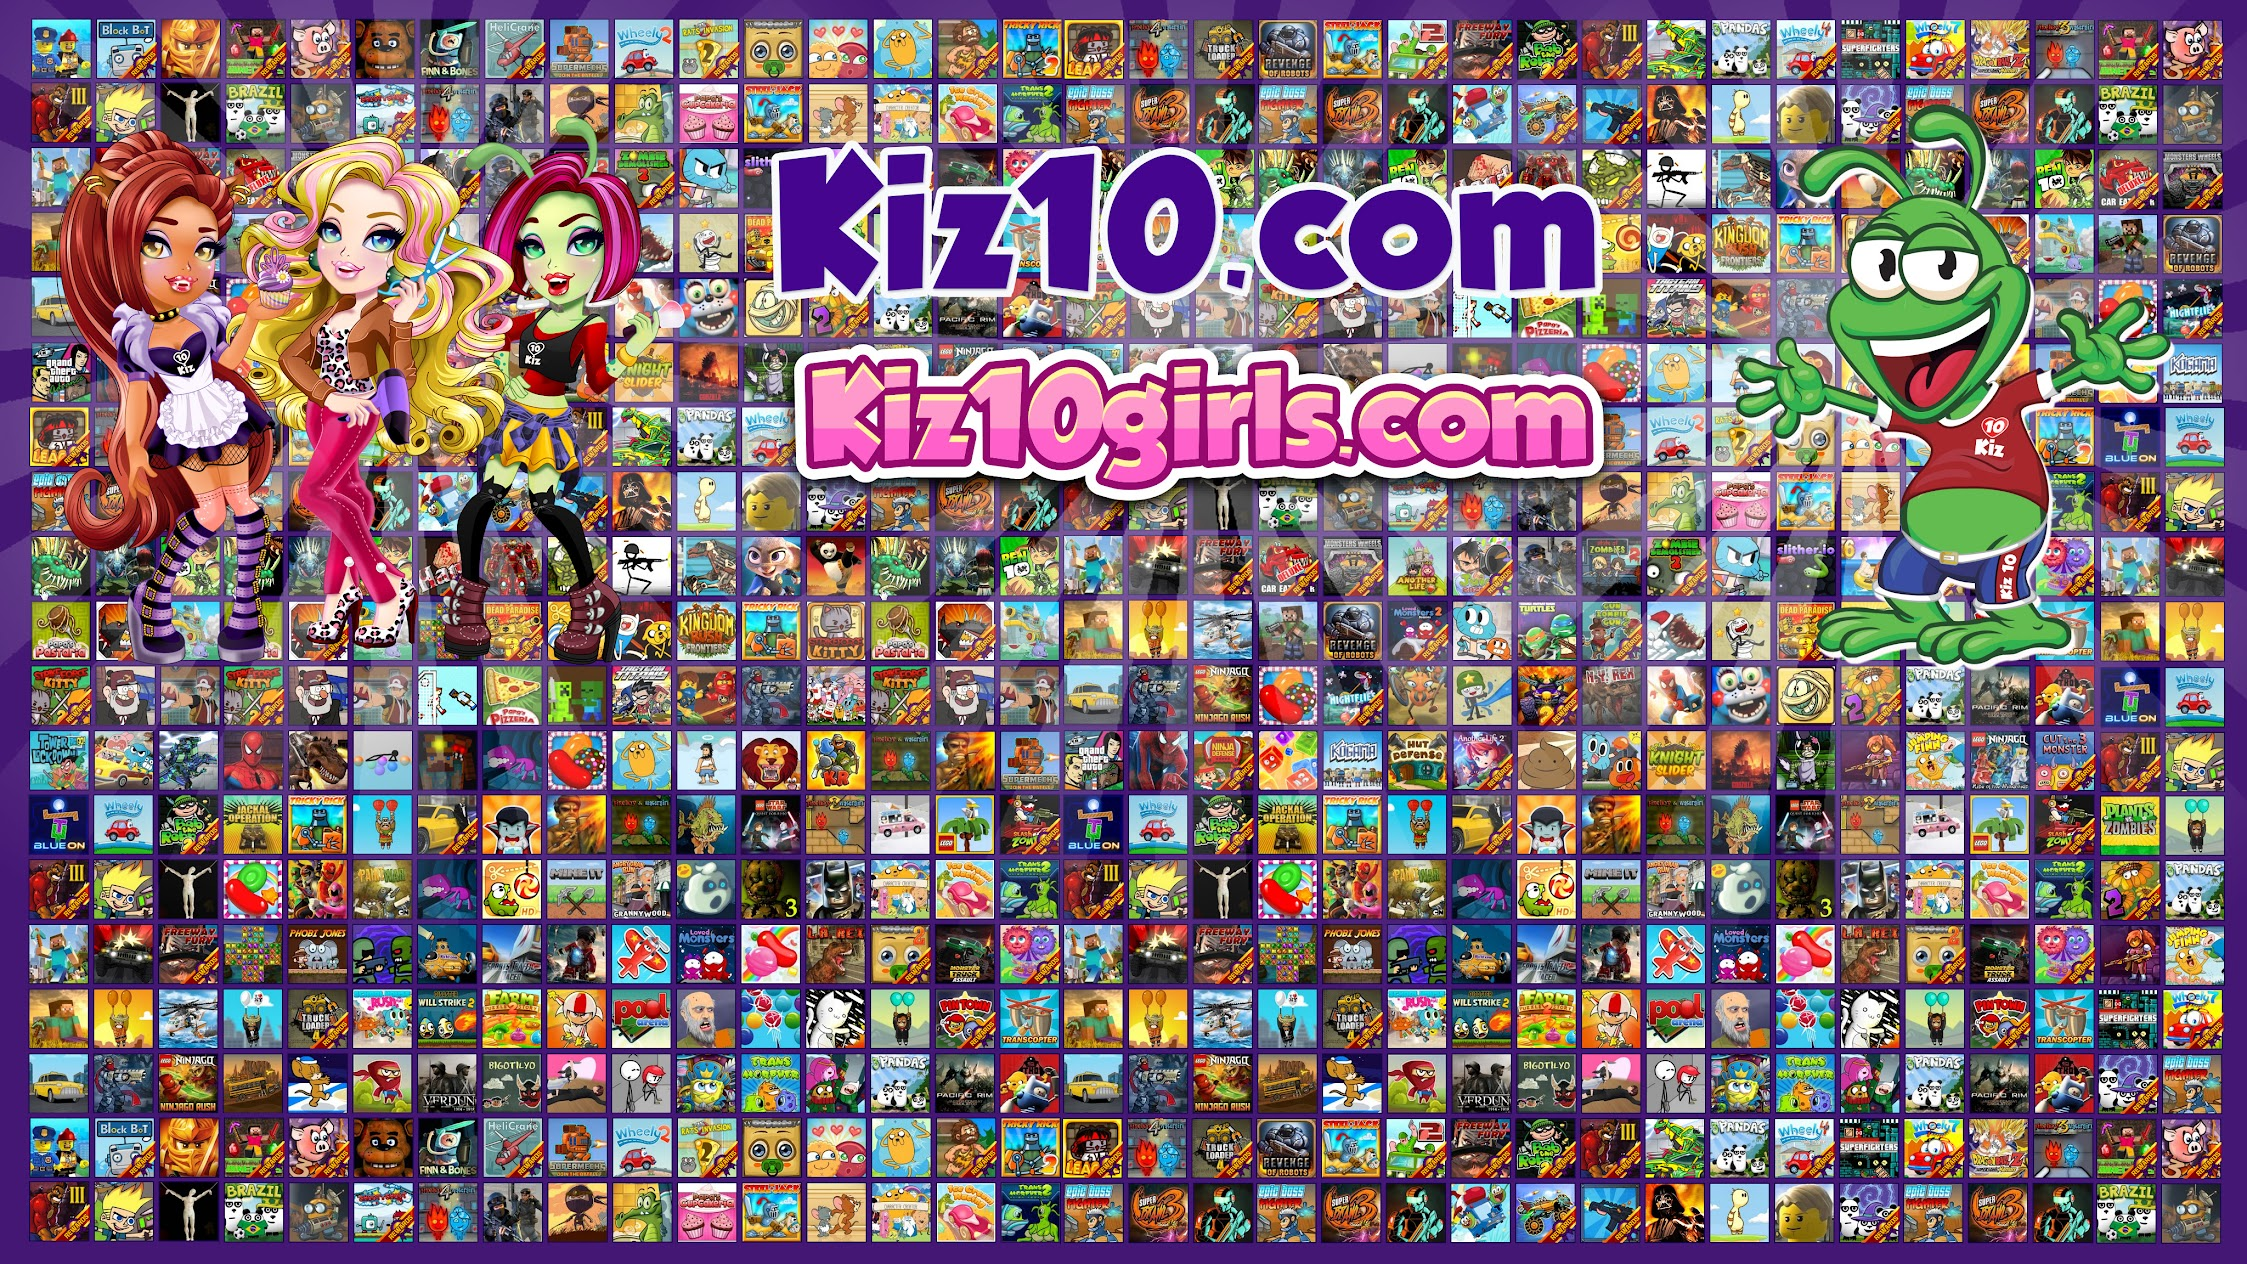 Kiz10.com Games & Kiz10girls.com Girl Games